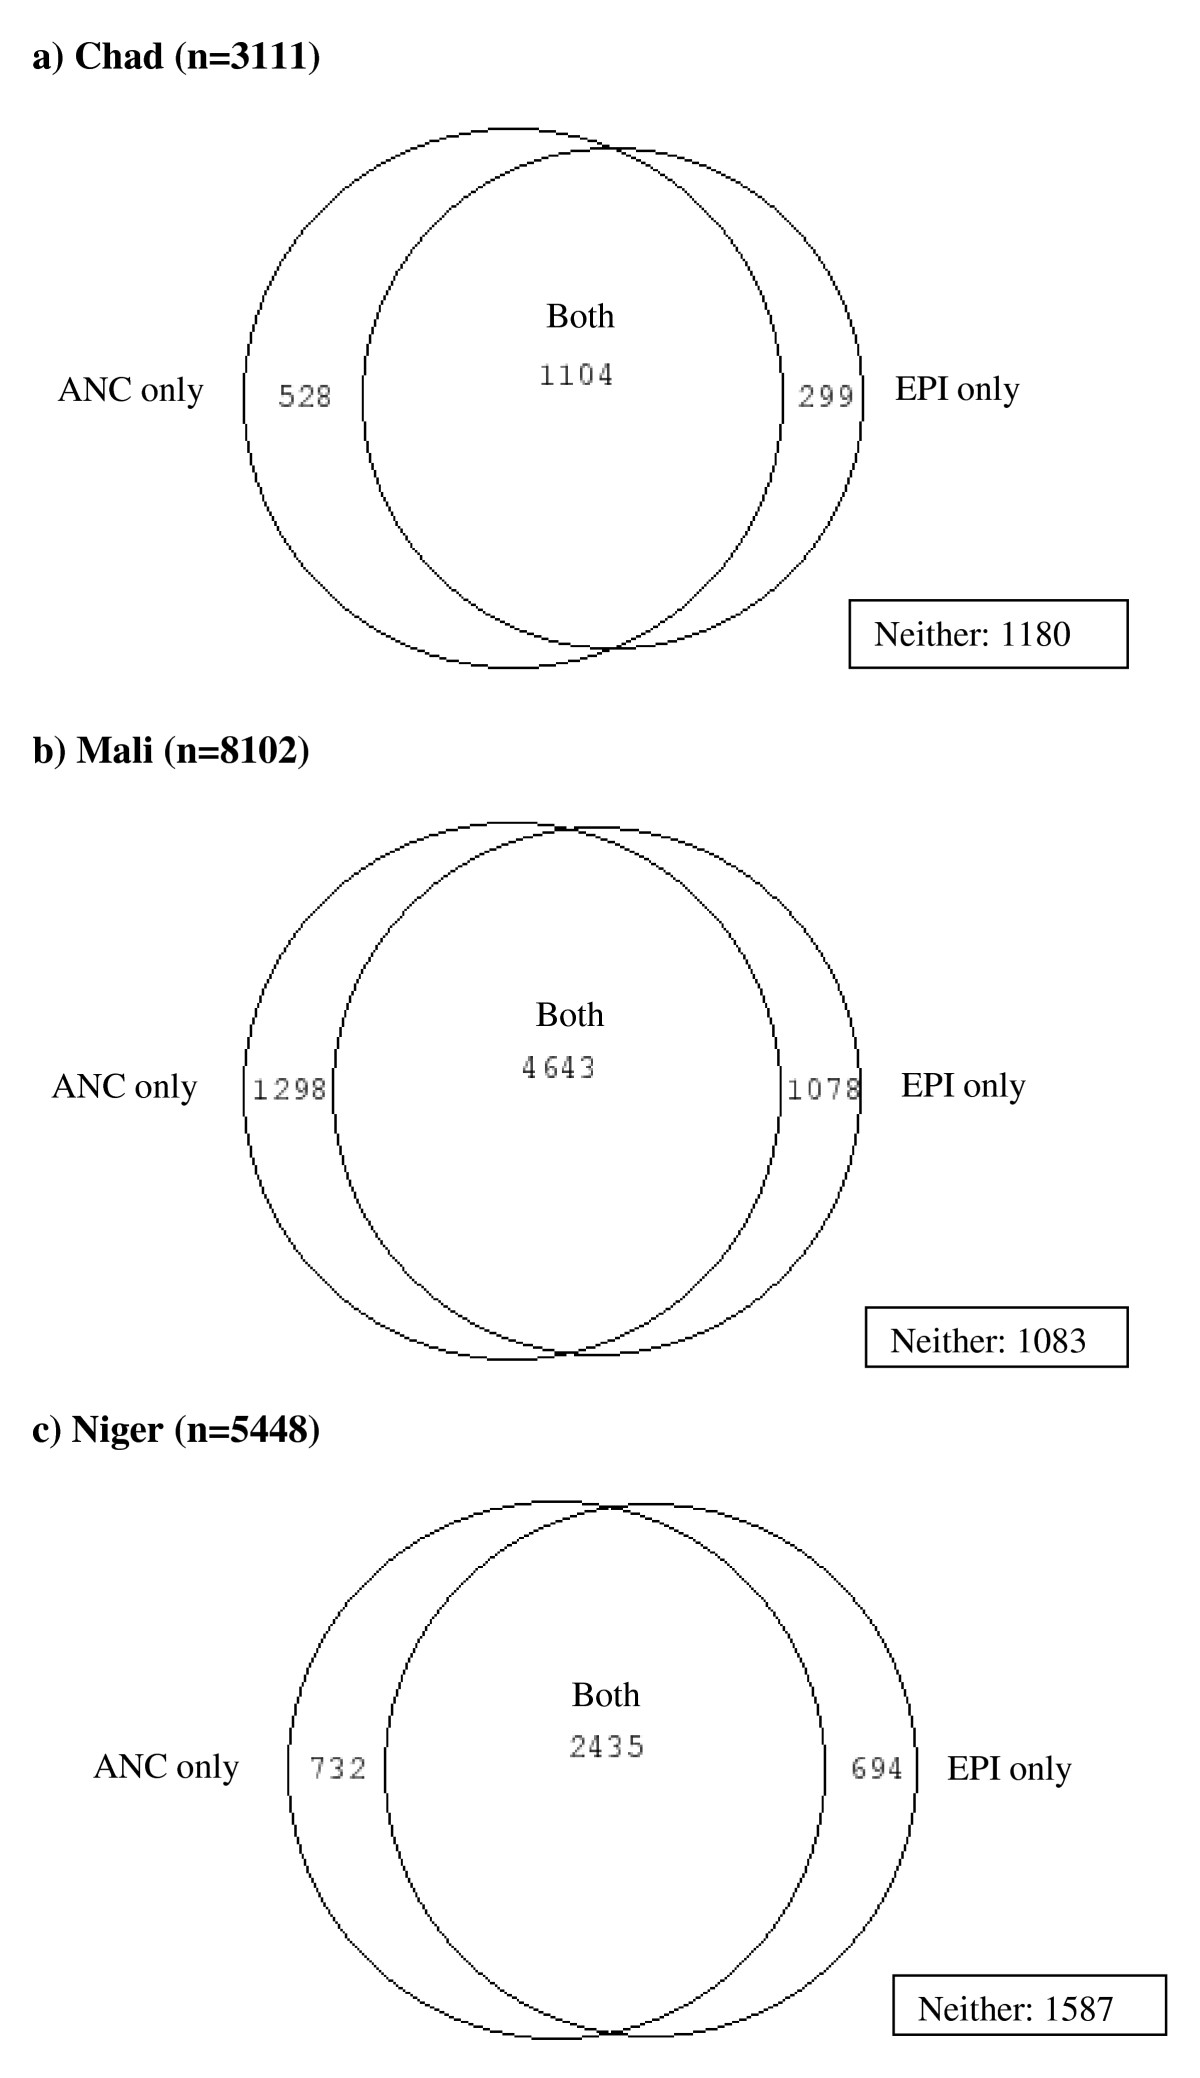 https://static-content.springer.com/image/art%3A10.1186%2F1475-2875-10-341/MediaObjects/12936_2011_Article_1932_Fig2_HTML.jpg